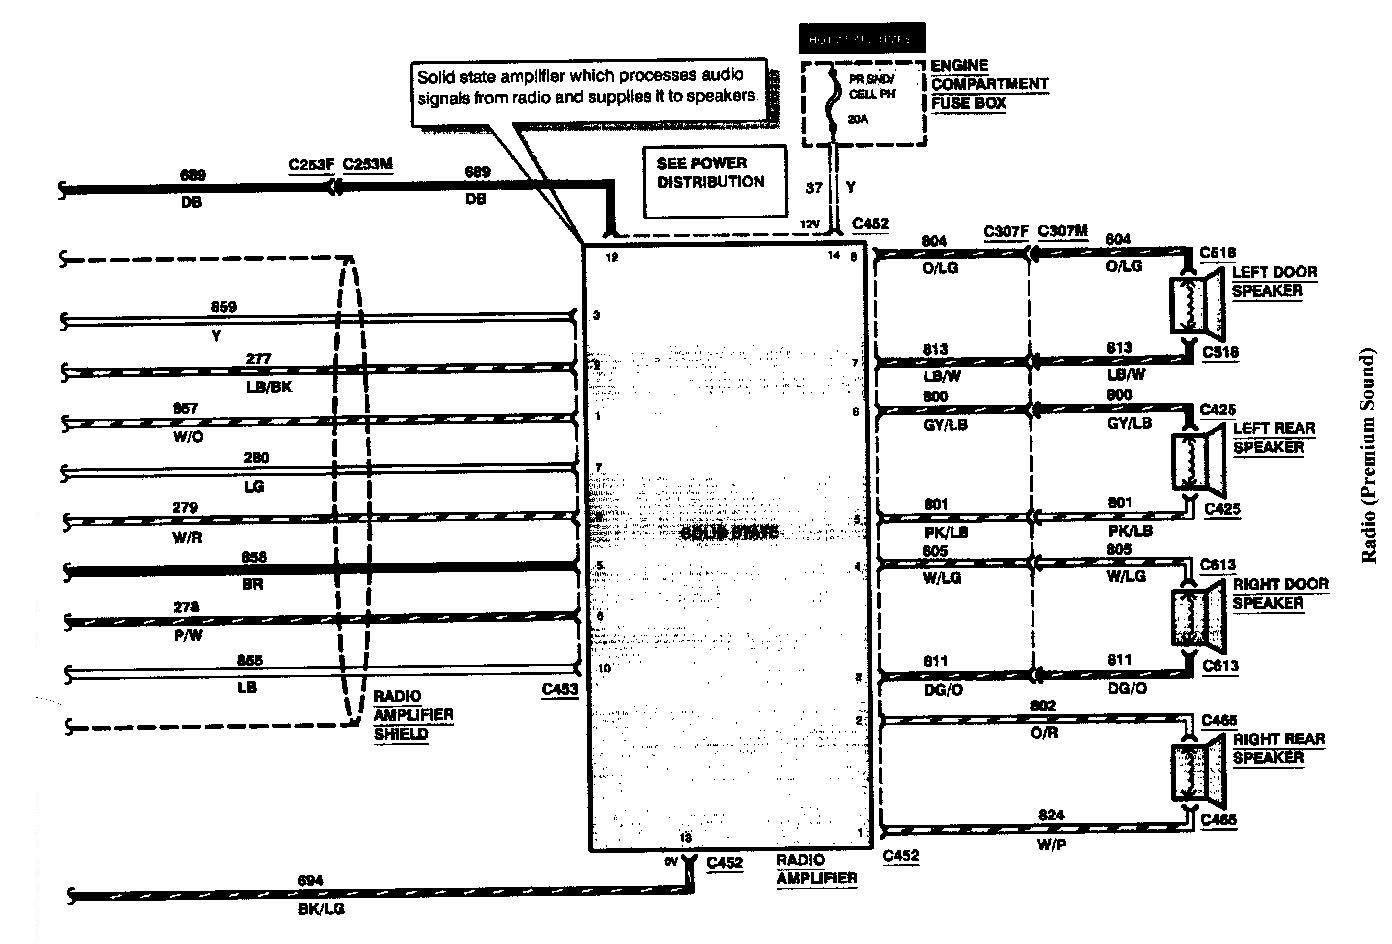 95Mark8 Premium Sound Wiring2 95 mark 8 jbl wiring diagram needed lincolns online message forum 1997 lincoln town car wiring diagram at crackthecode.co